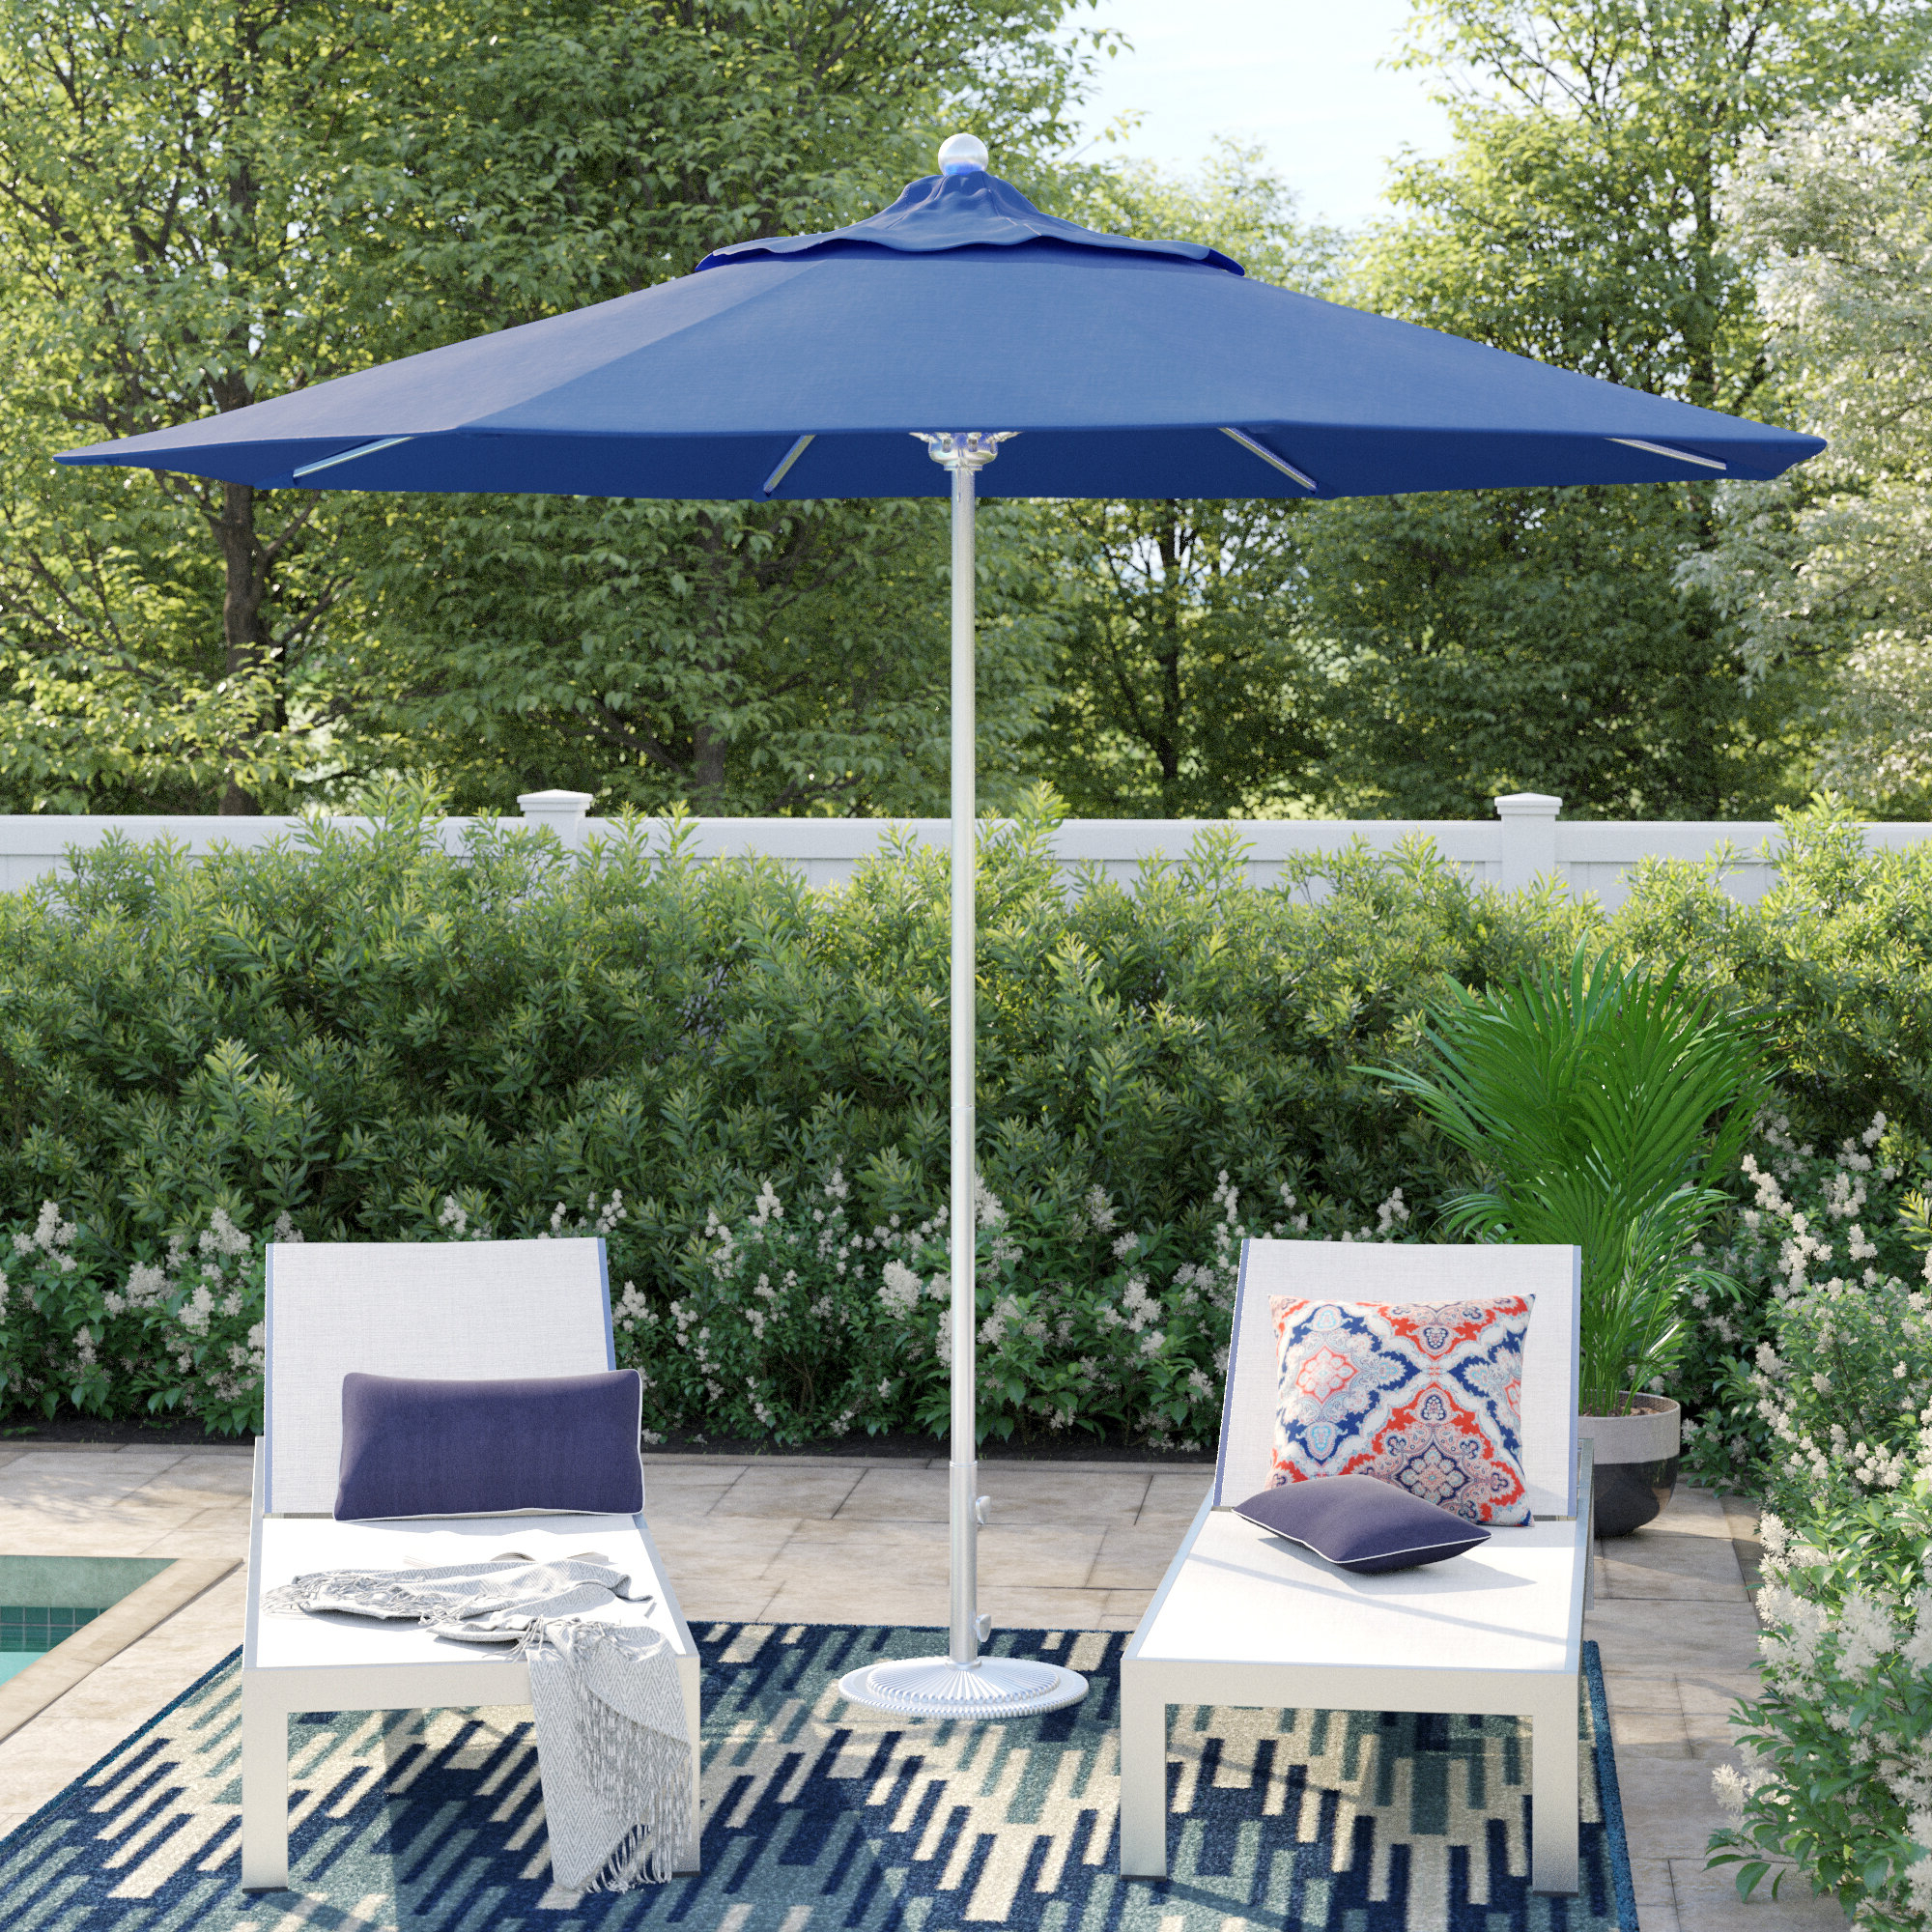 Caravelle 9' Market Umbrella With Regard To Most Up To Date Caravelle Market Sunbrella Umbrellas (View 2 of 20)